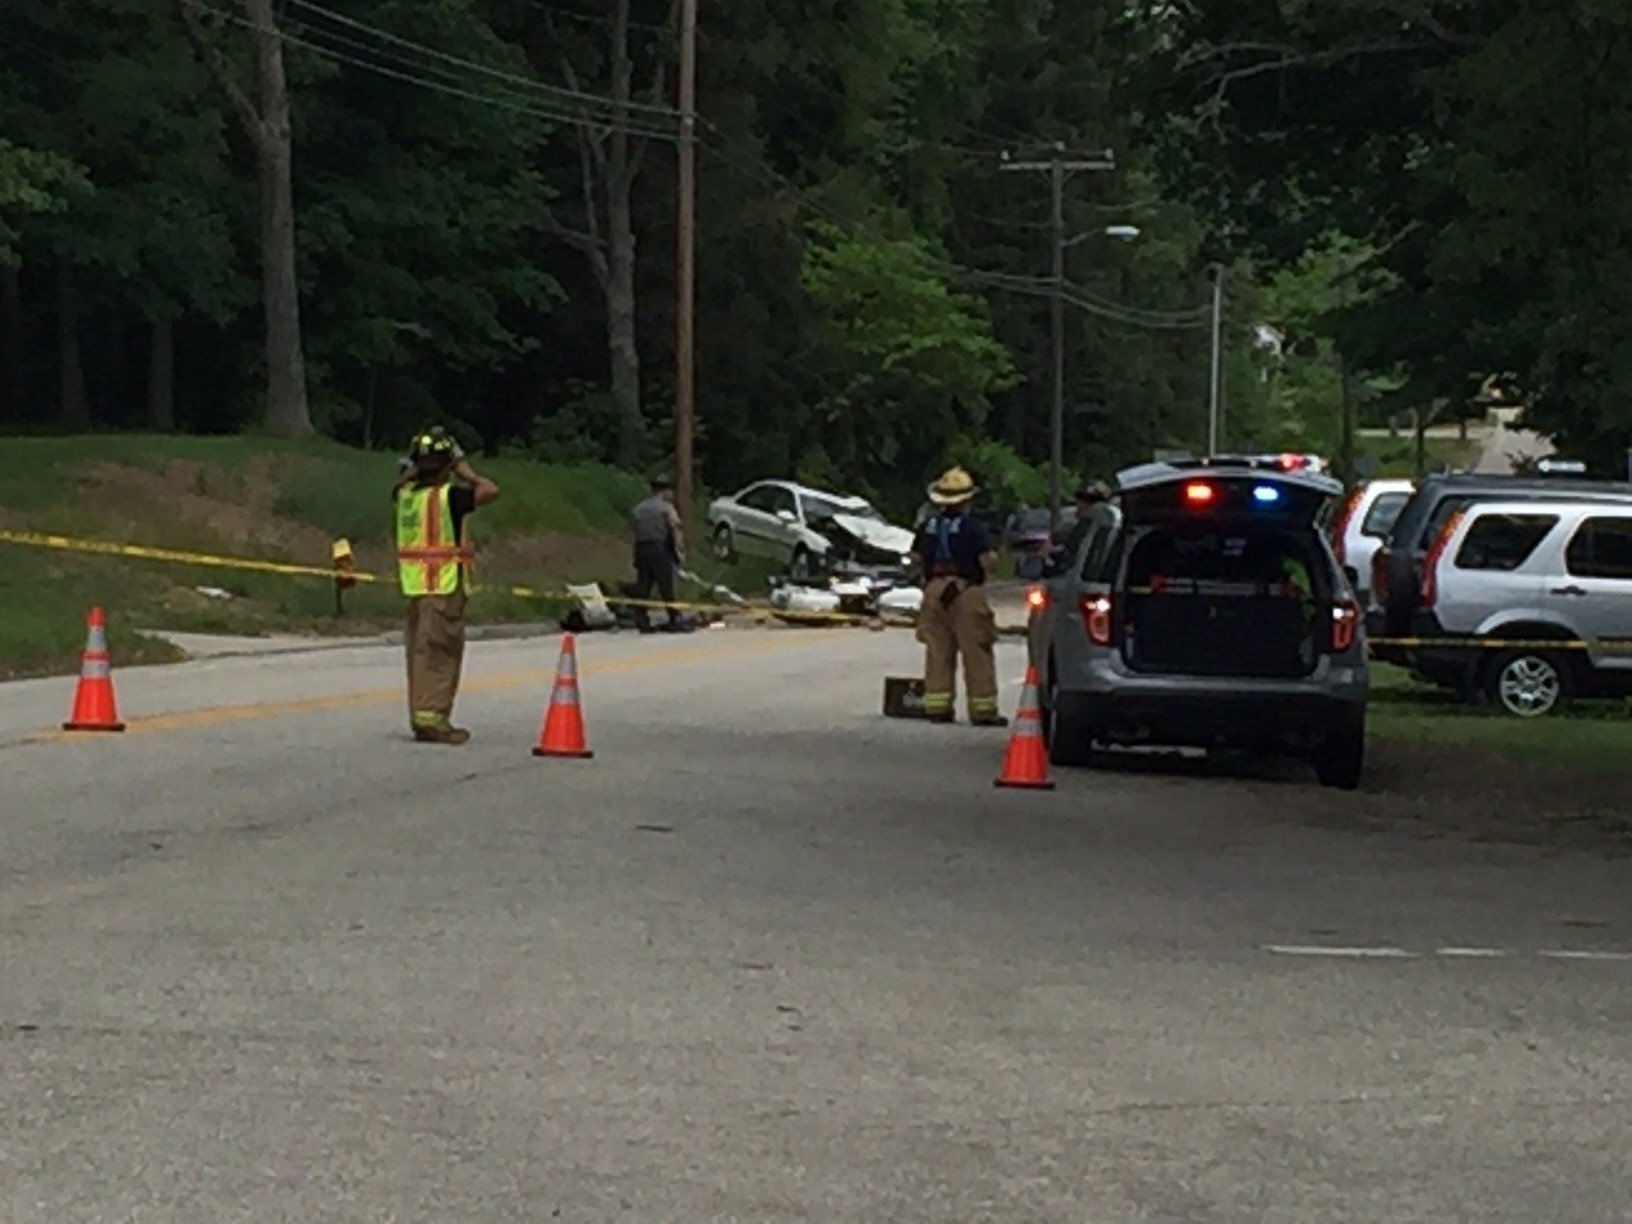 A motorcyclist dies after crash in Windham on Wednesday. (WFSB)